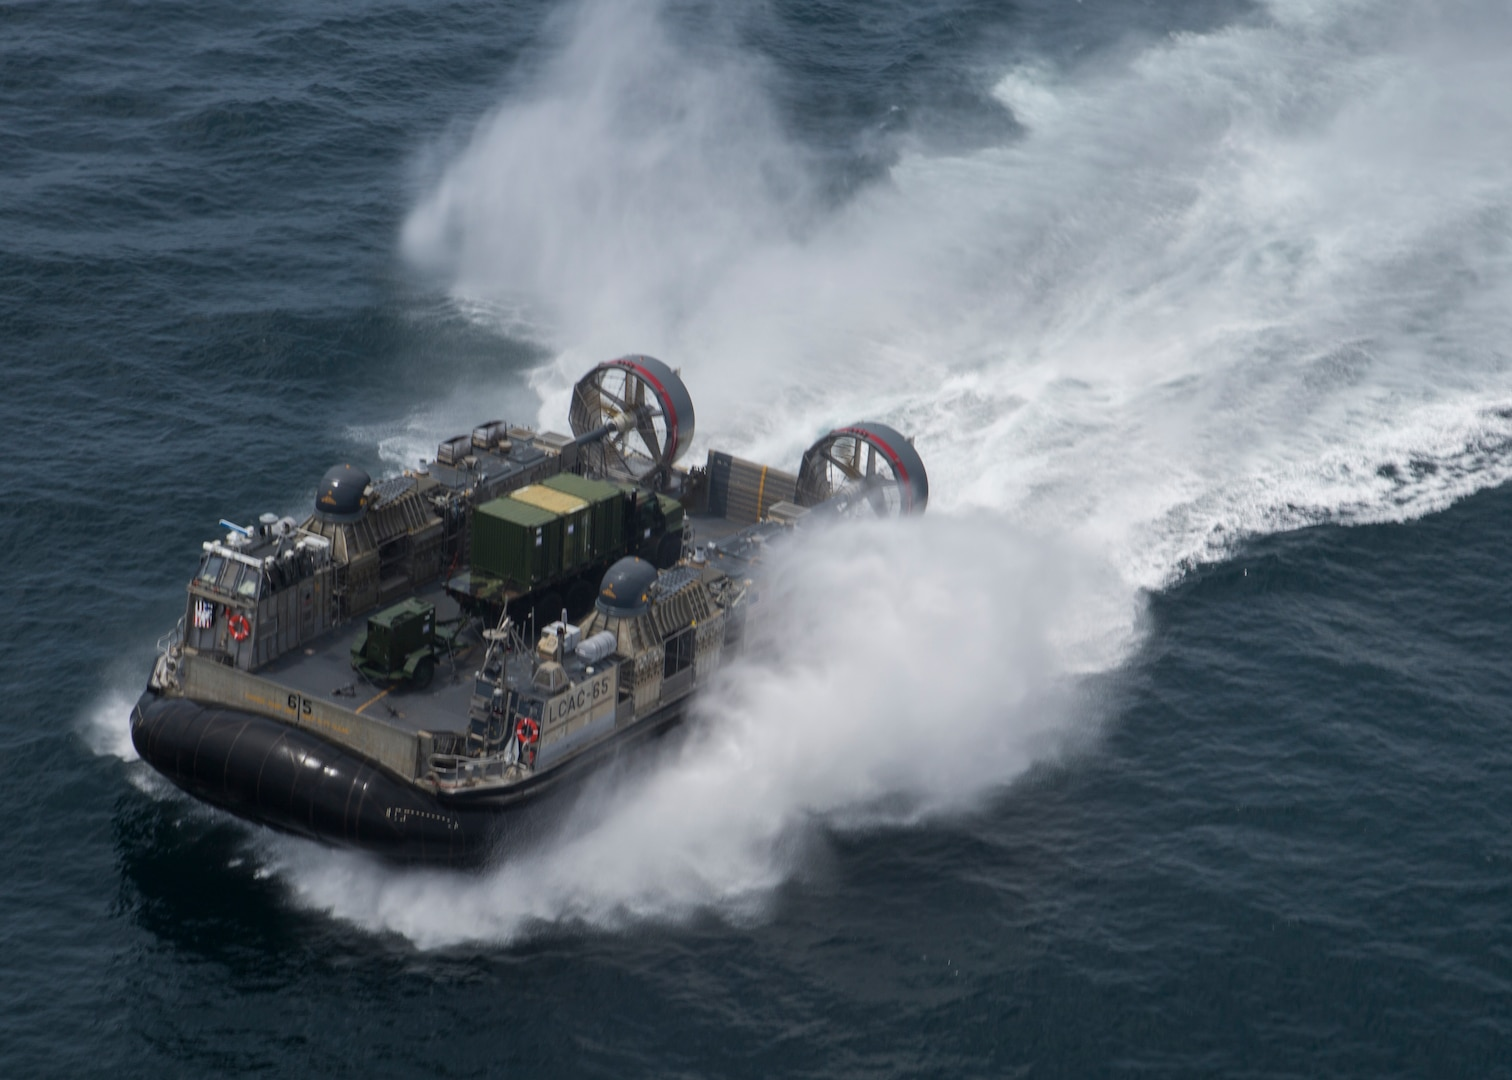 A U.S. Navy Landing Craft, Air Cushion hovercraft transports Marines and equipment with Special Purpose Marine Air-Ground Task Force - Peru during a humanitarian assistance and disaster relief exercise off of the coast of Chorrillos Beach near Lima, Peru, Nov. 24, 2018.